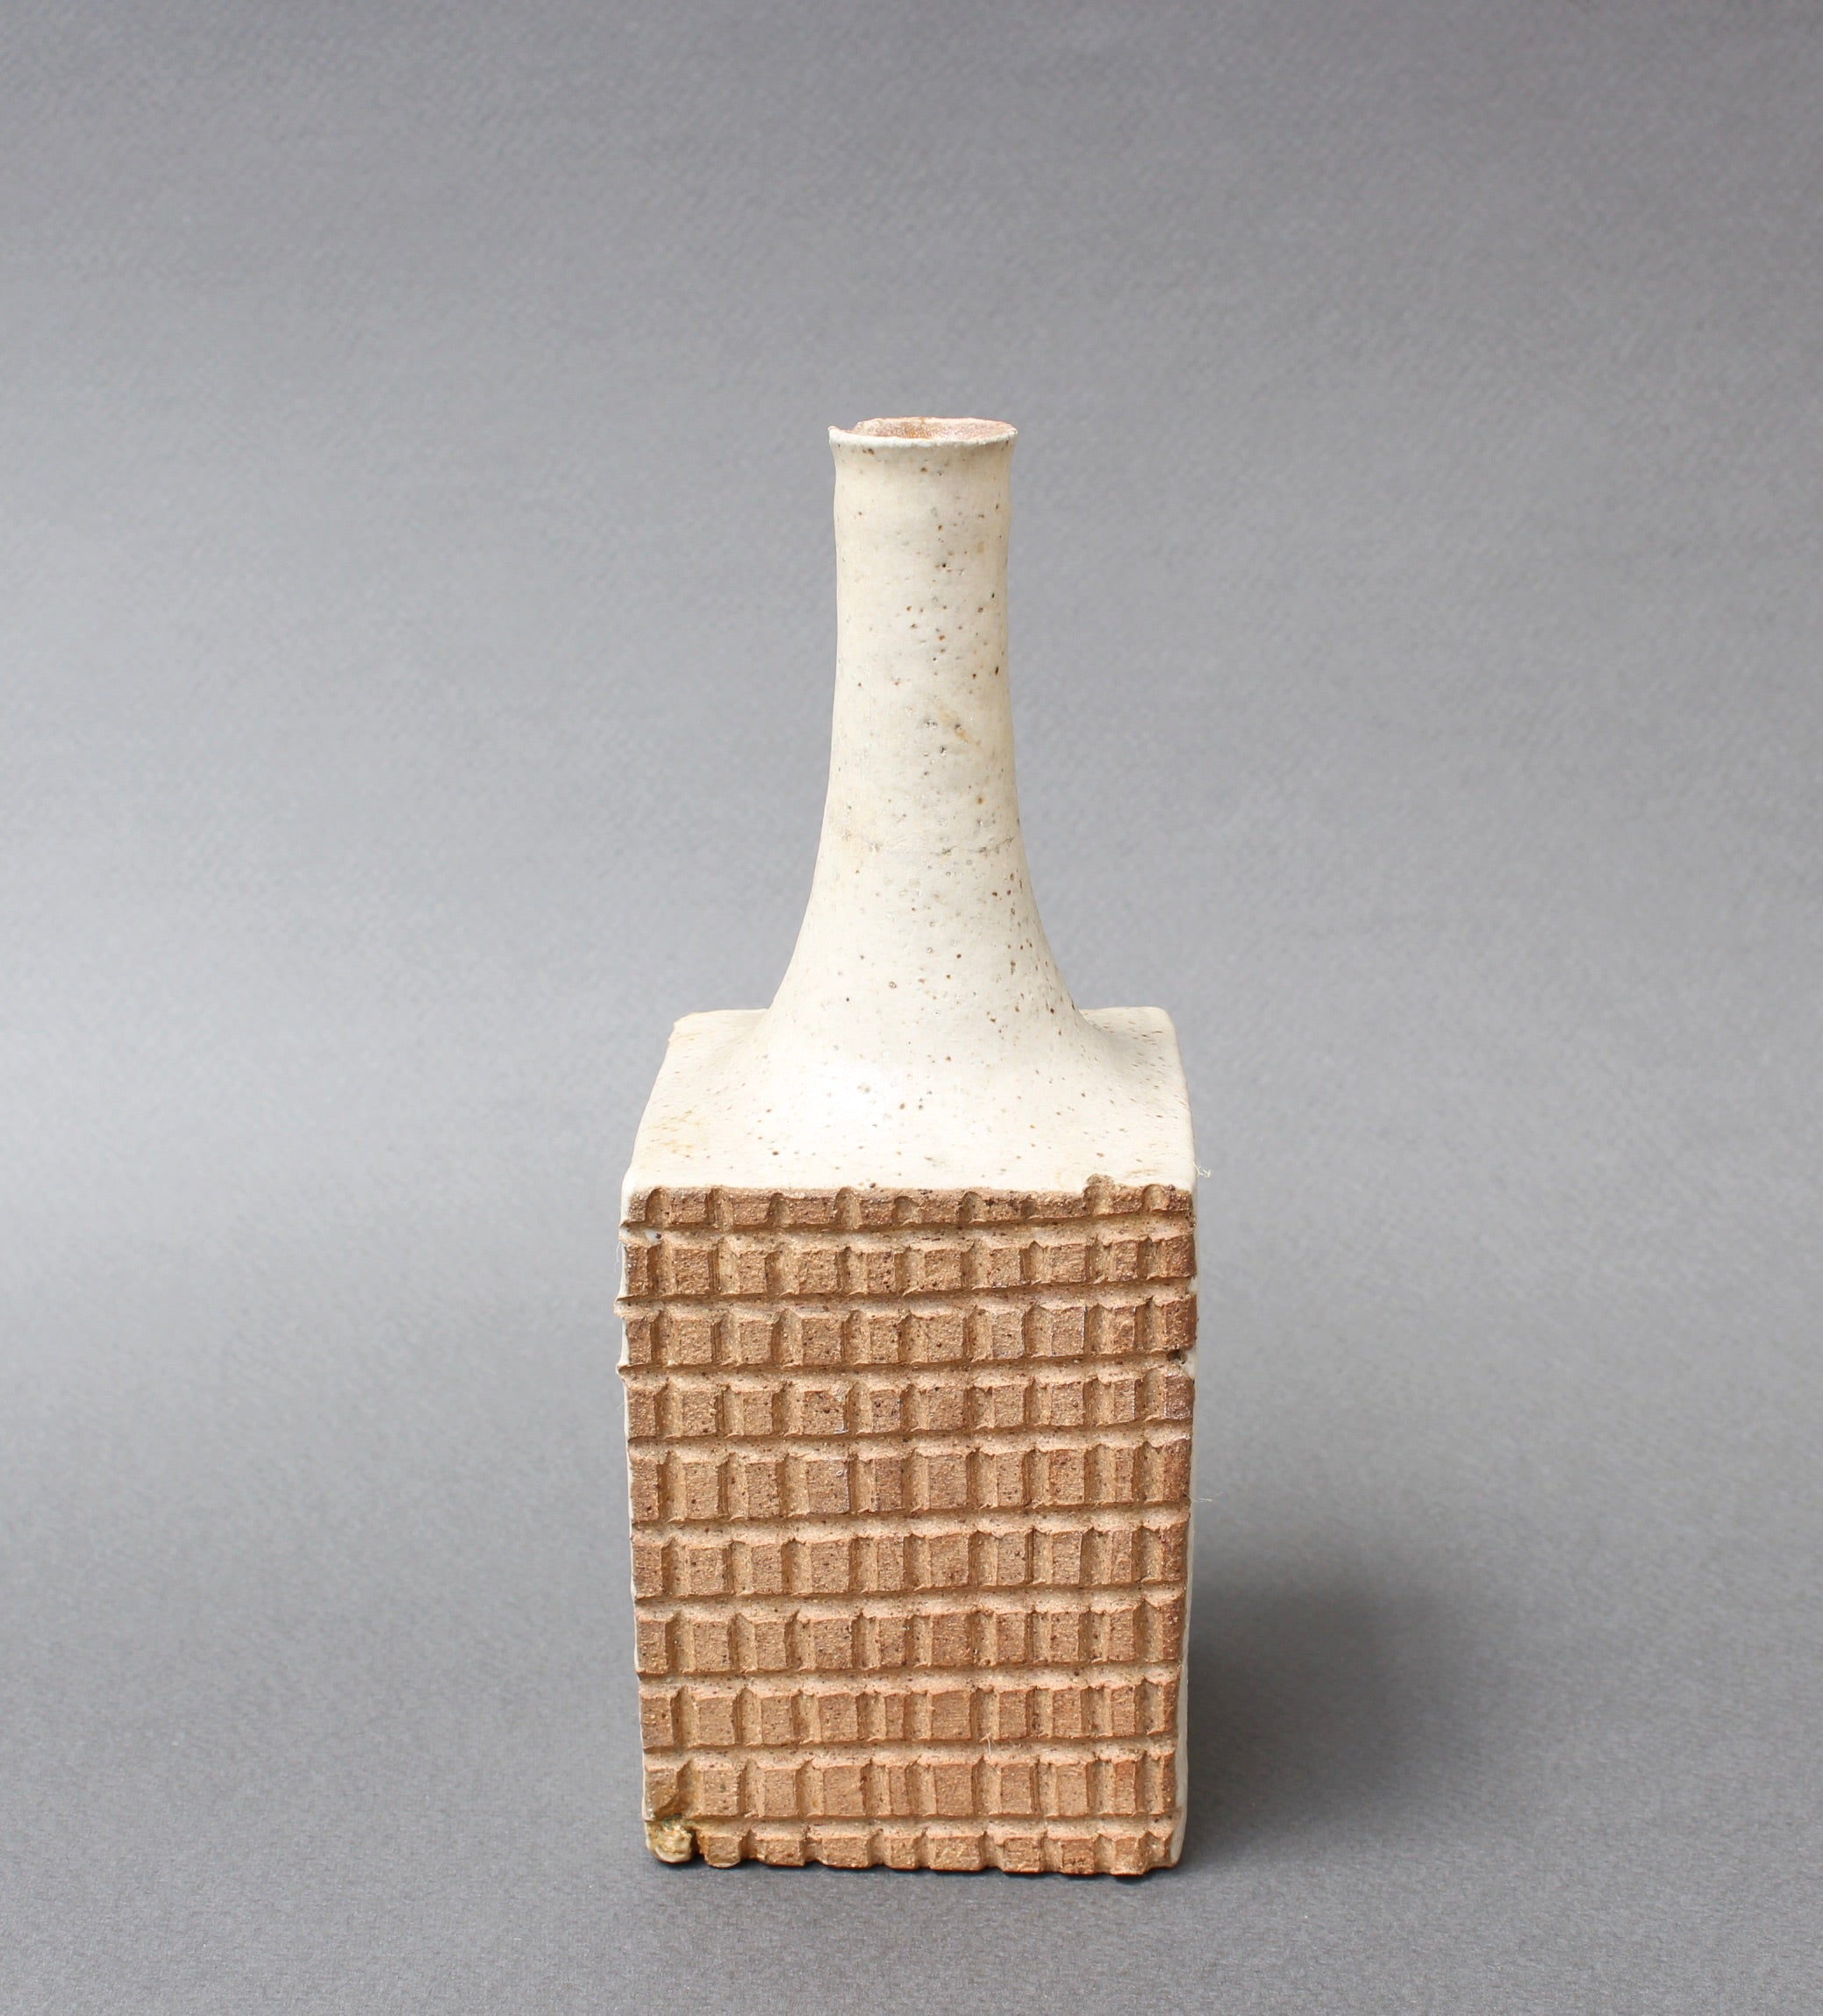 Italian Ceramic Decorative Bottle by Bruno Gambone (circa 1980s) - Small